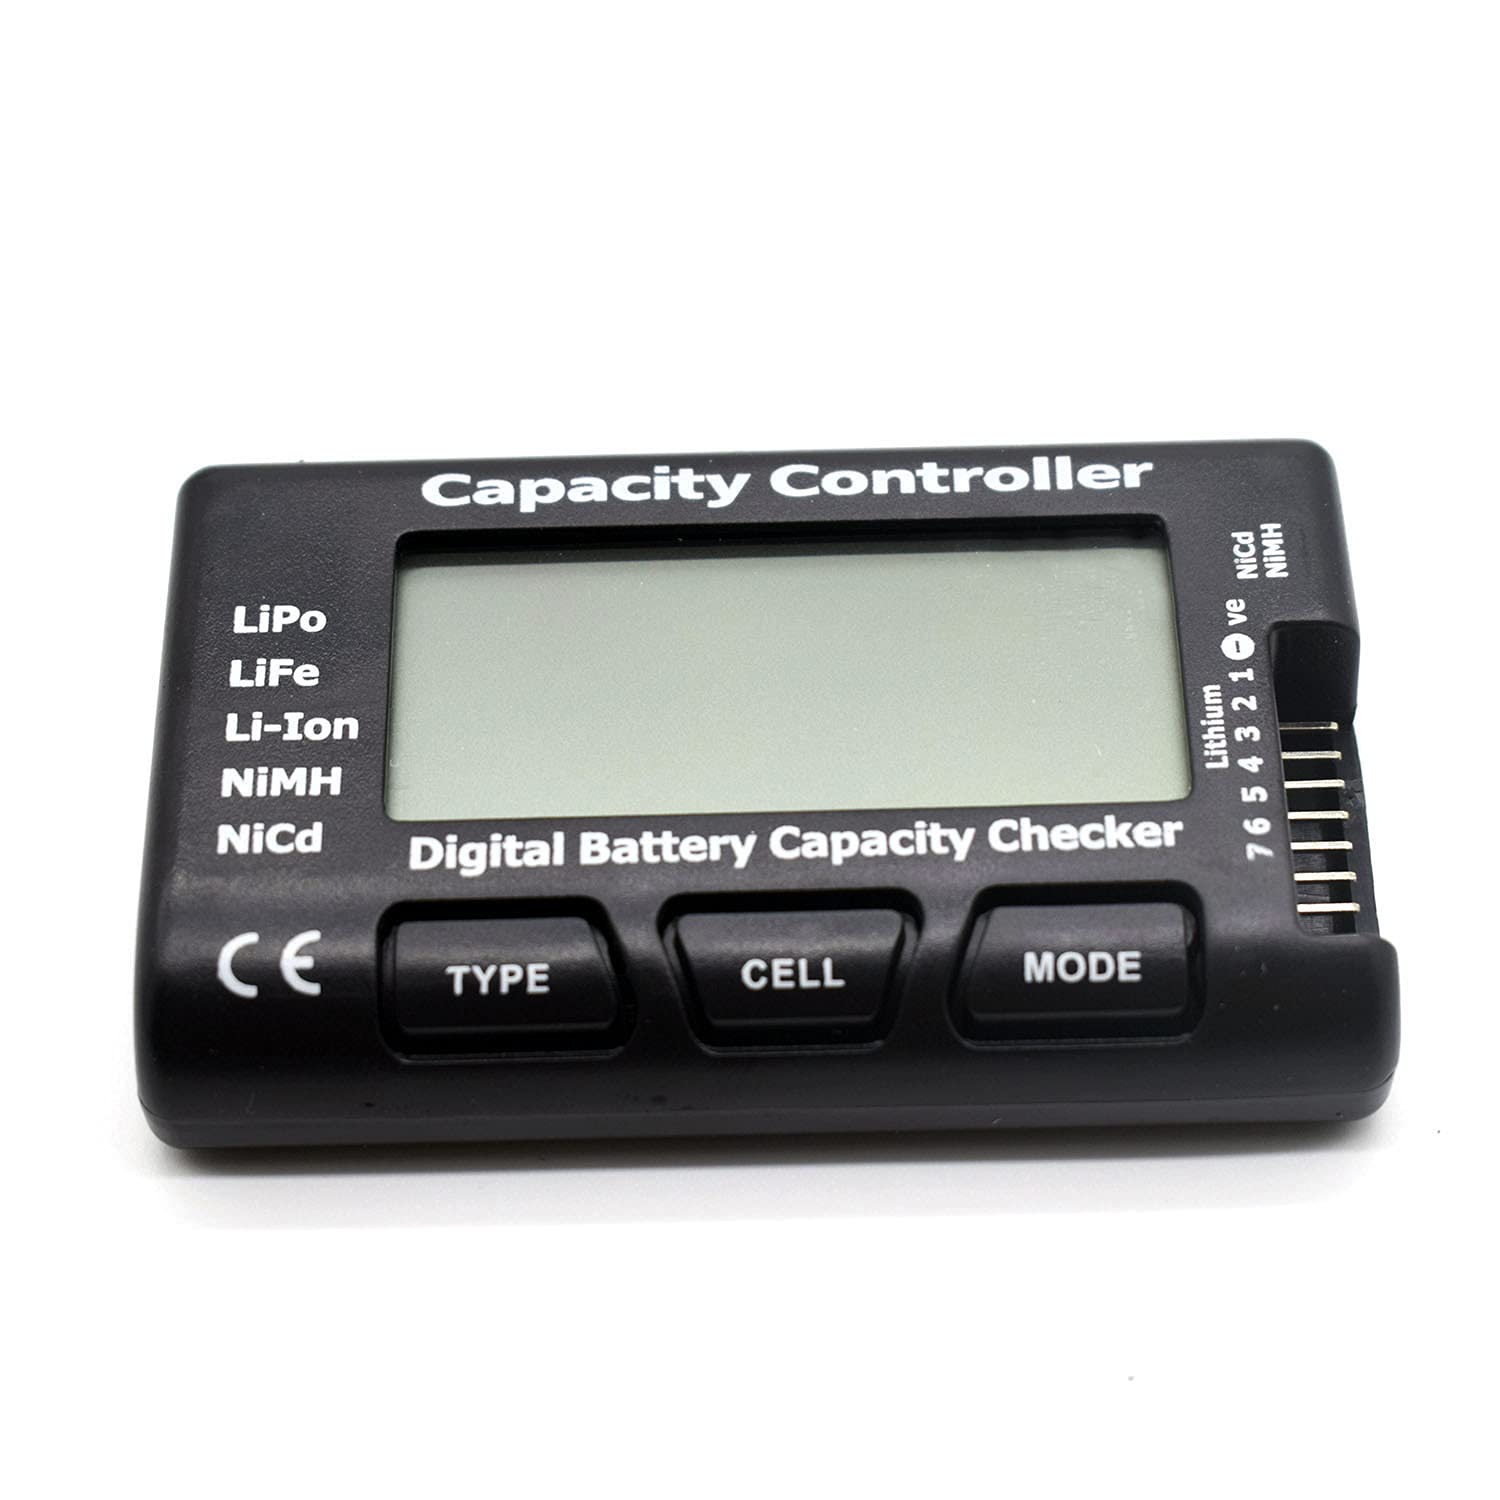 Goldby RC Cellmeter 7 Digital Battery Capacity Checker Controller Tester Voltage Tester for LiPo /Life /Li-ion /NiMH /Nicd Battery